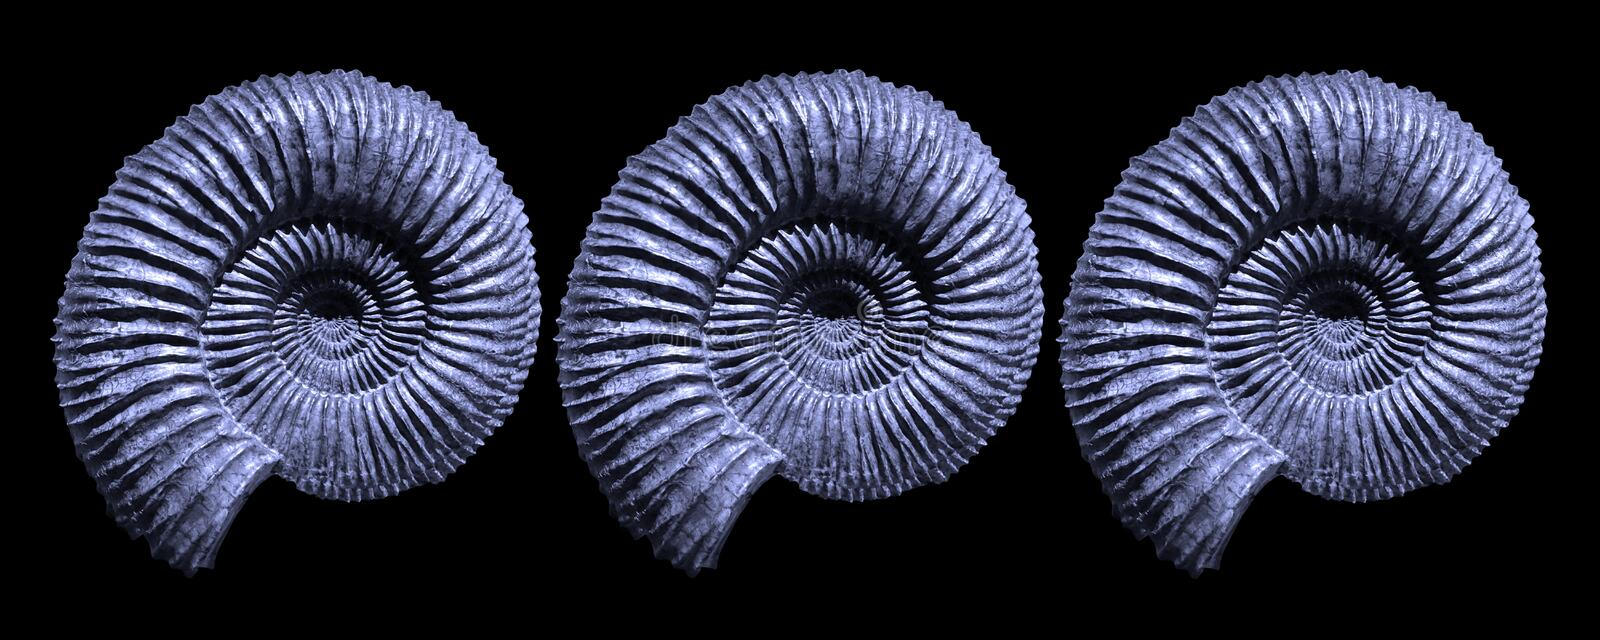 Blue Ammonite Fossils. Ammonite fossils form natural fractal patterns. Three petrified spiral fossils against a black background are a striking display of royalty free stock photos